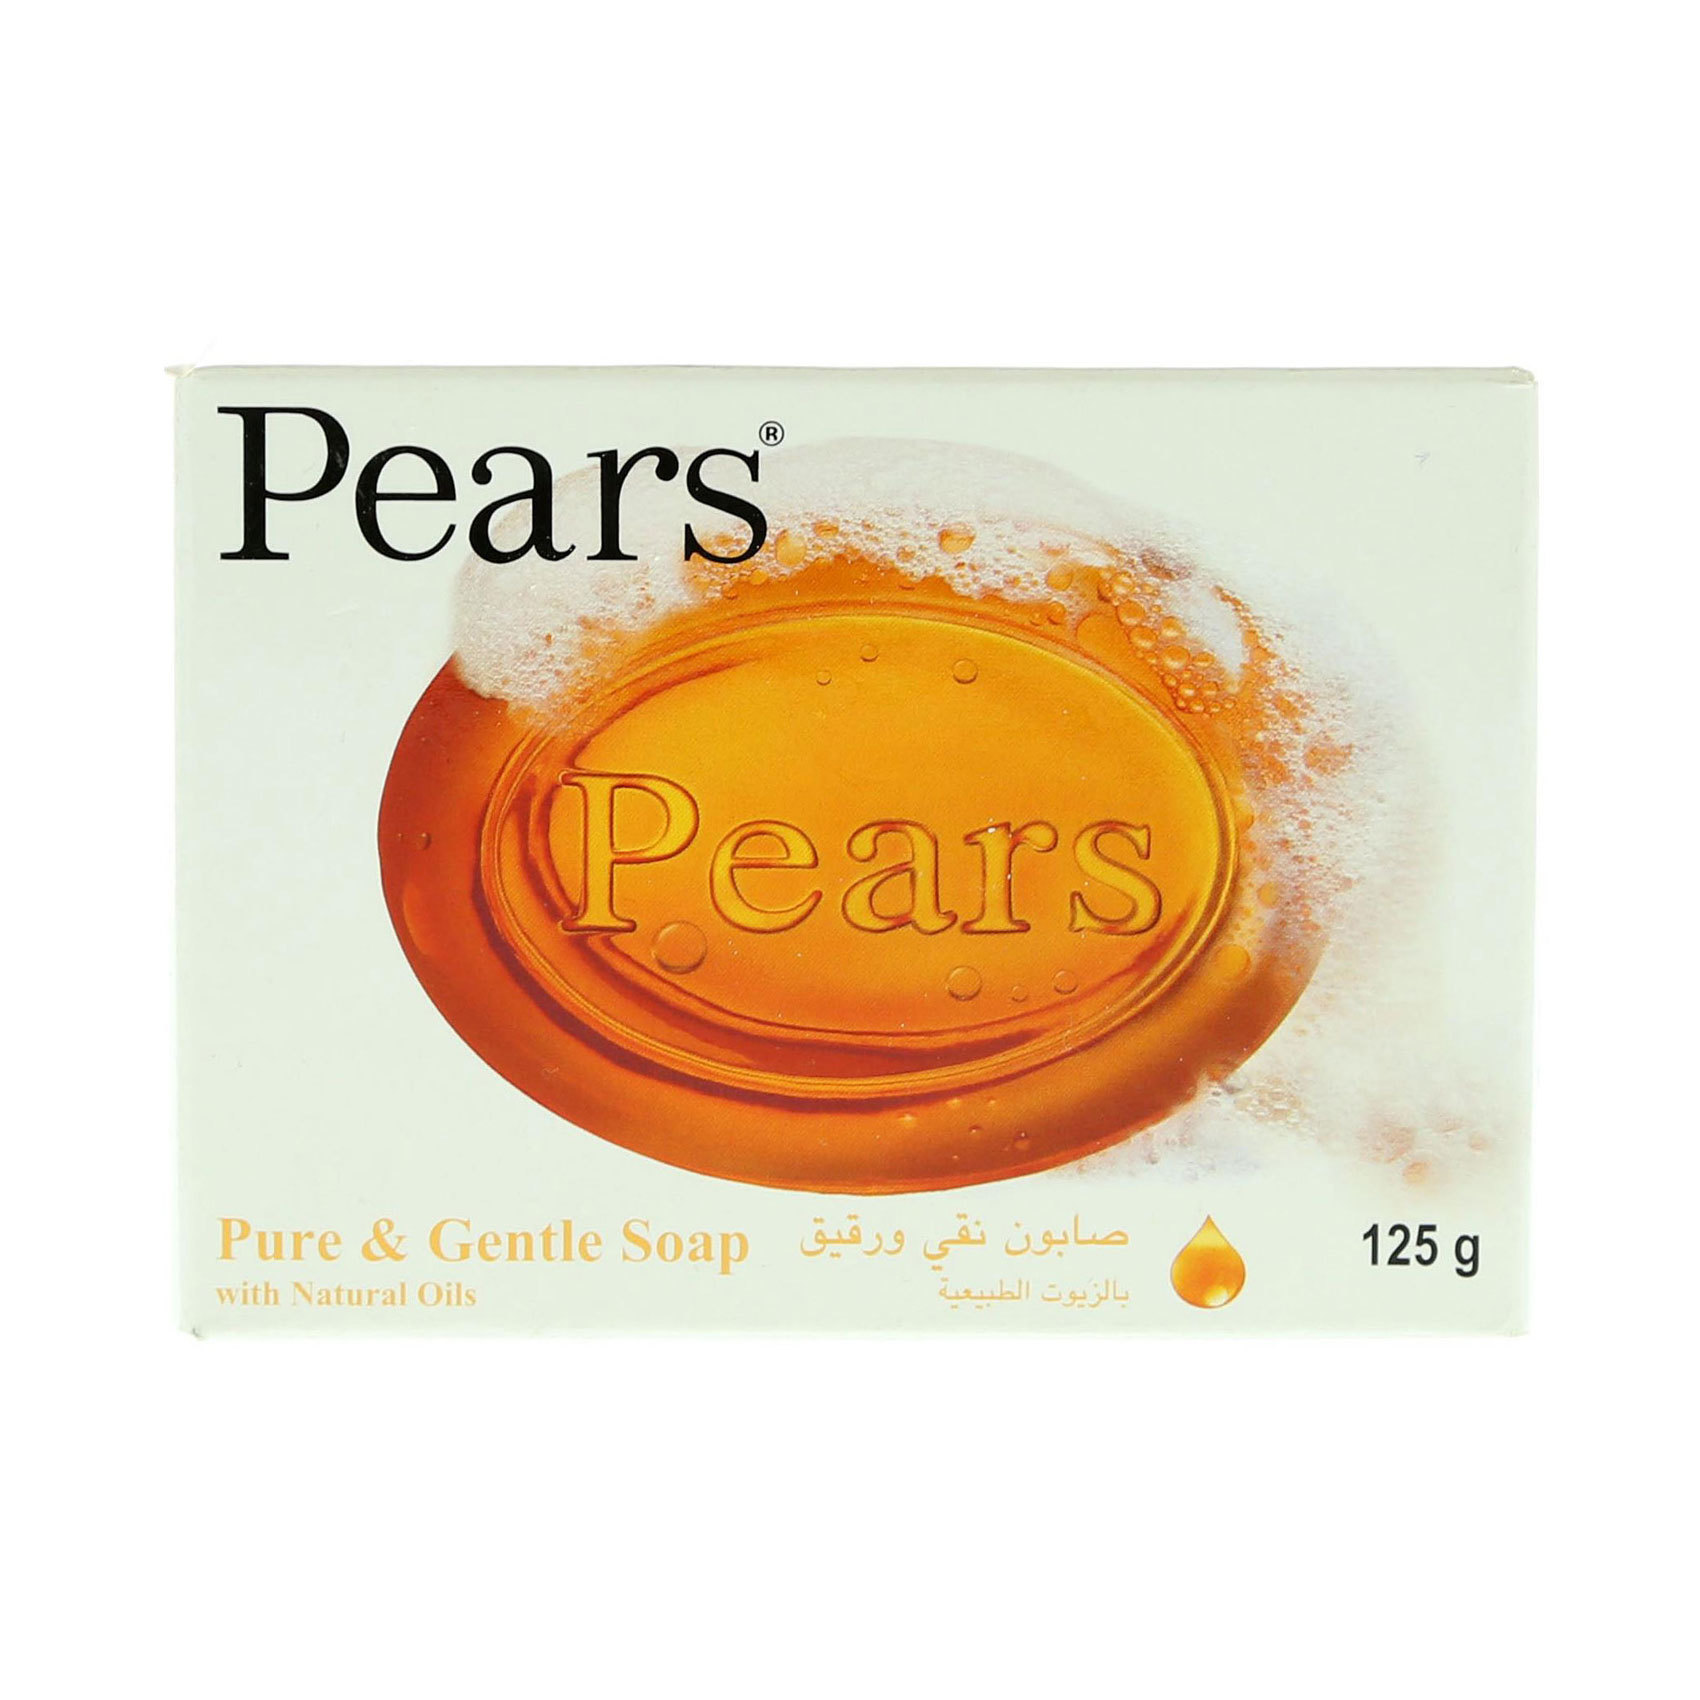 PEARS SOAPS 125GMS